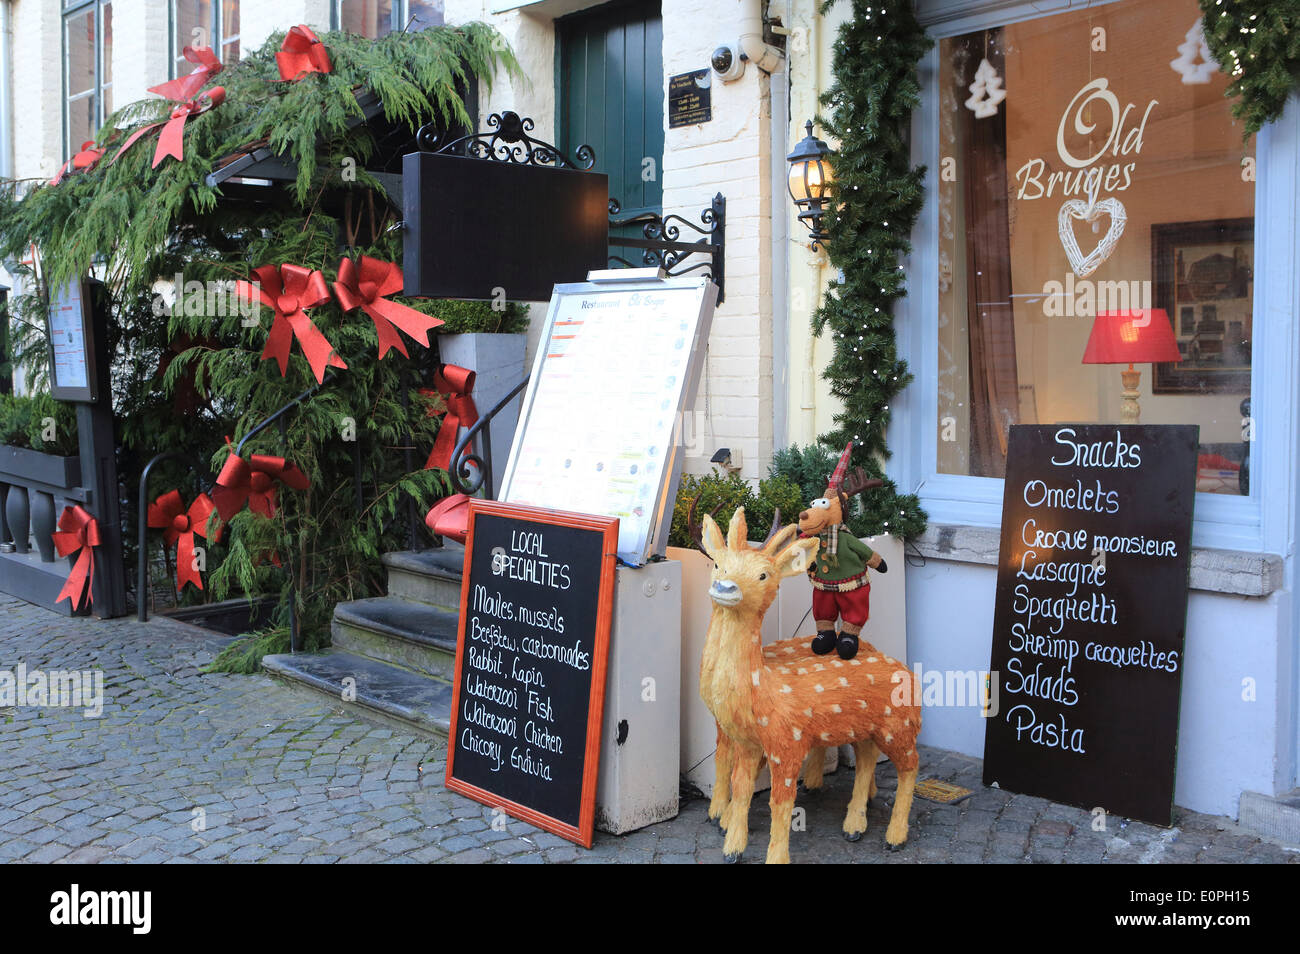 festive christmas decorations and menu outside a restaurant in the old town of brugesbrugge